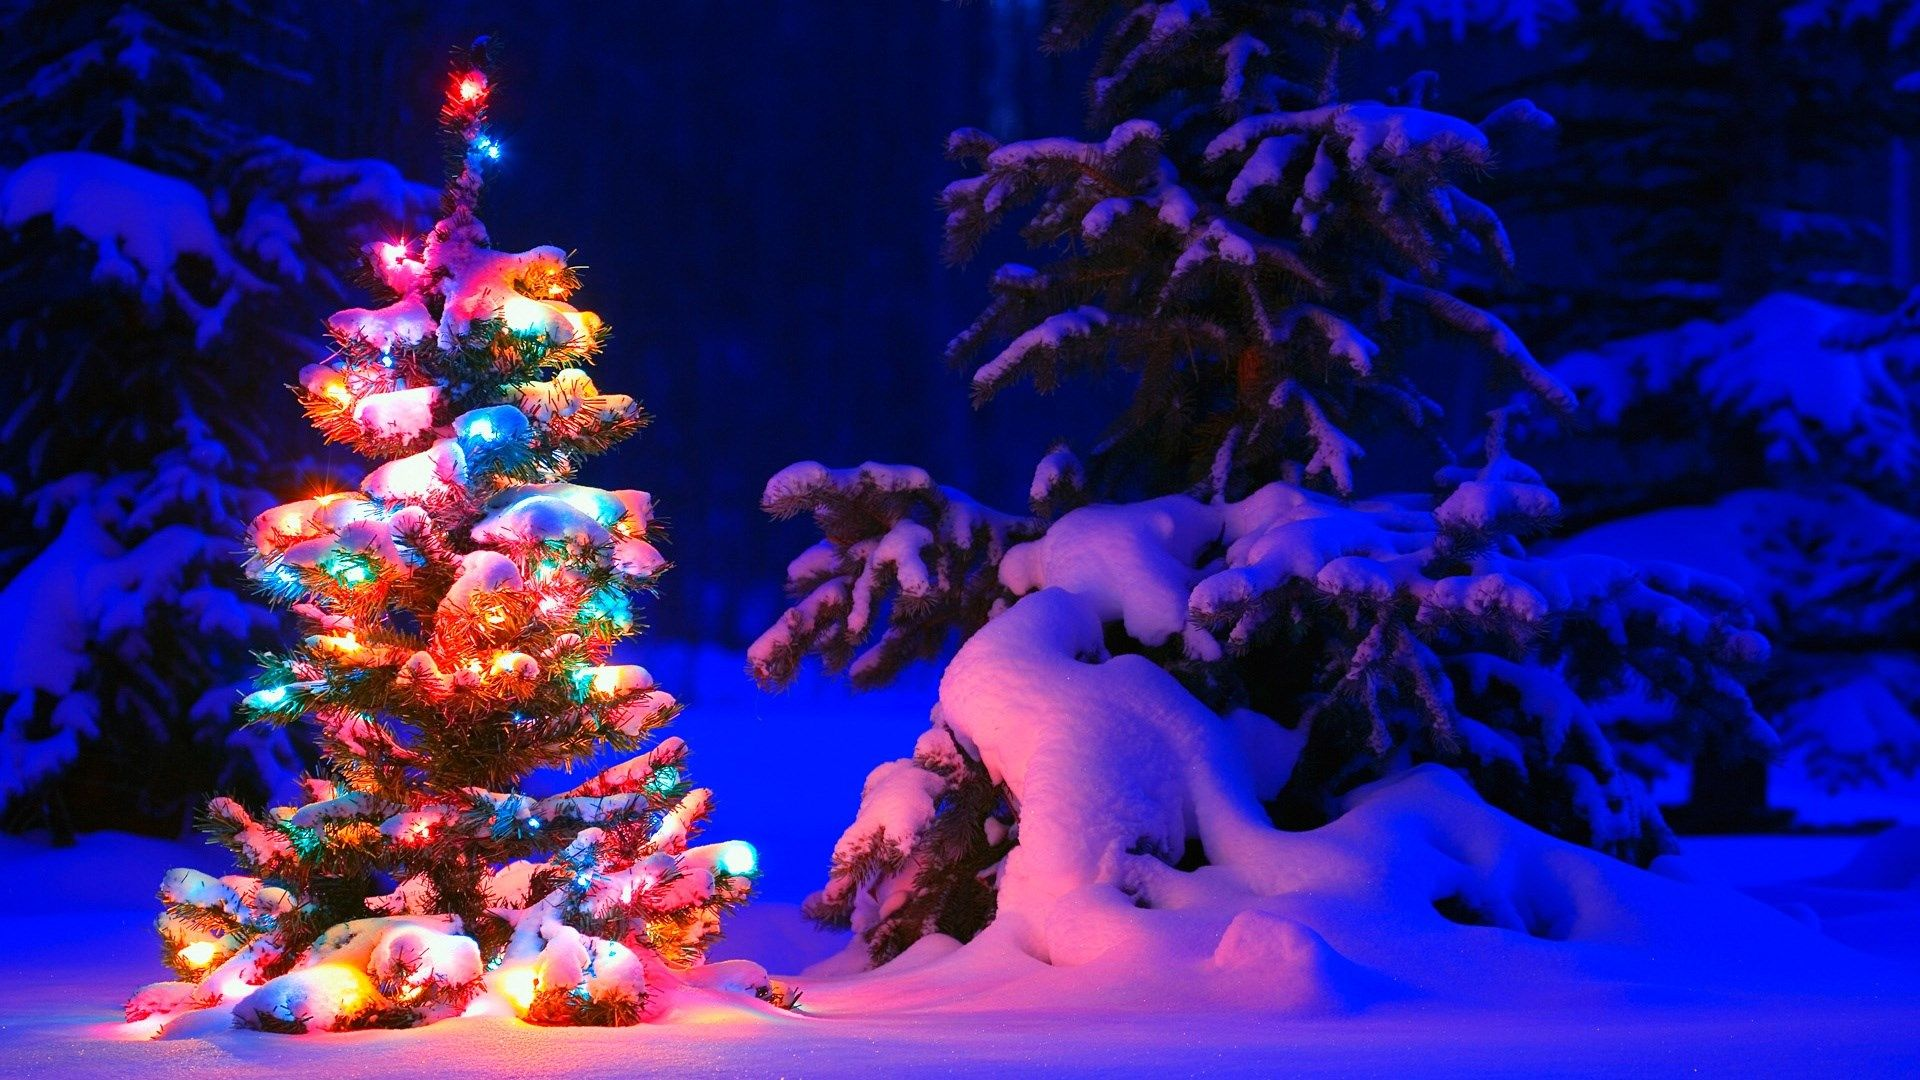 Christmas Christmas Desktop Snowy Christmas Tree Christmas Wallpaper Free